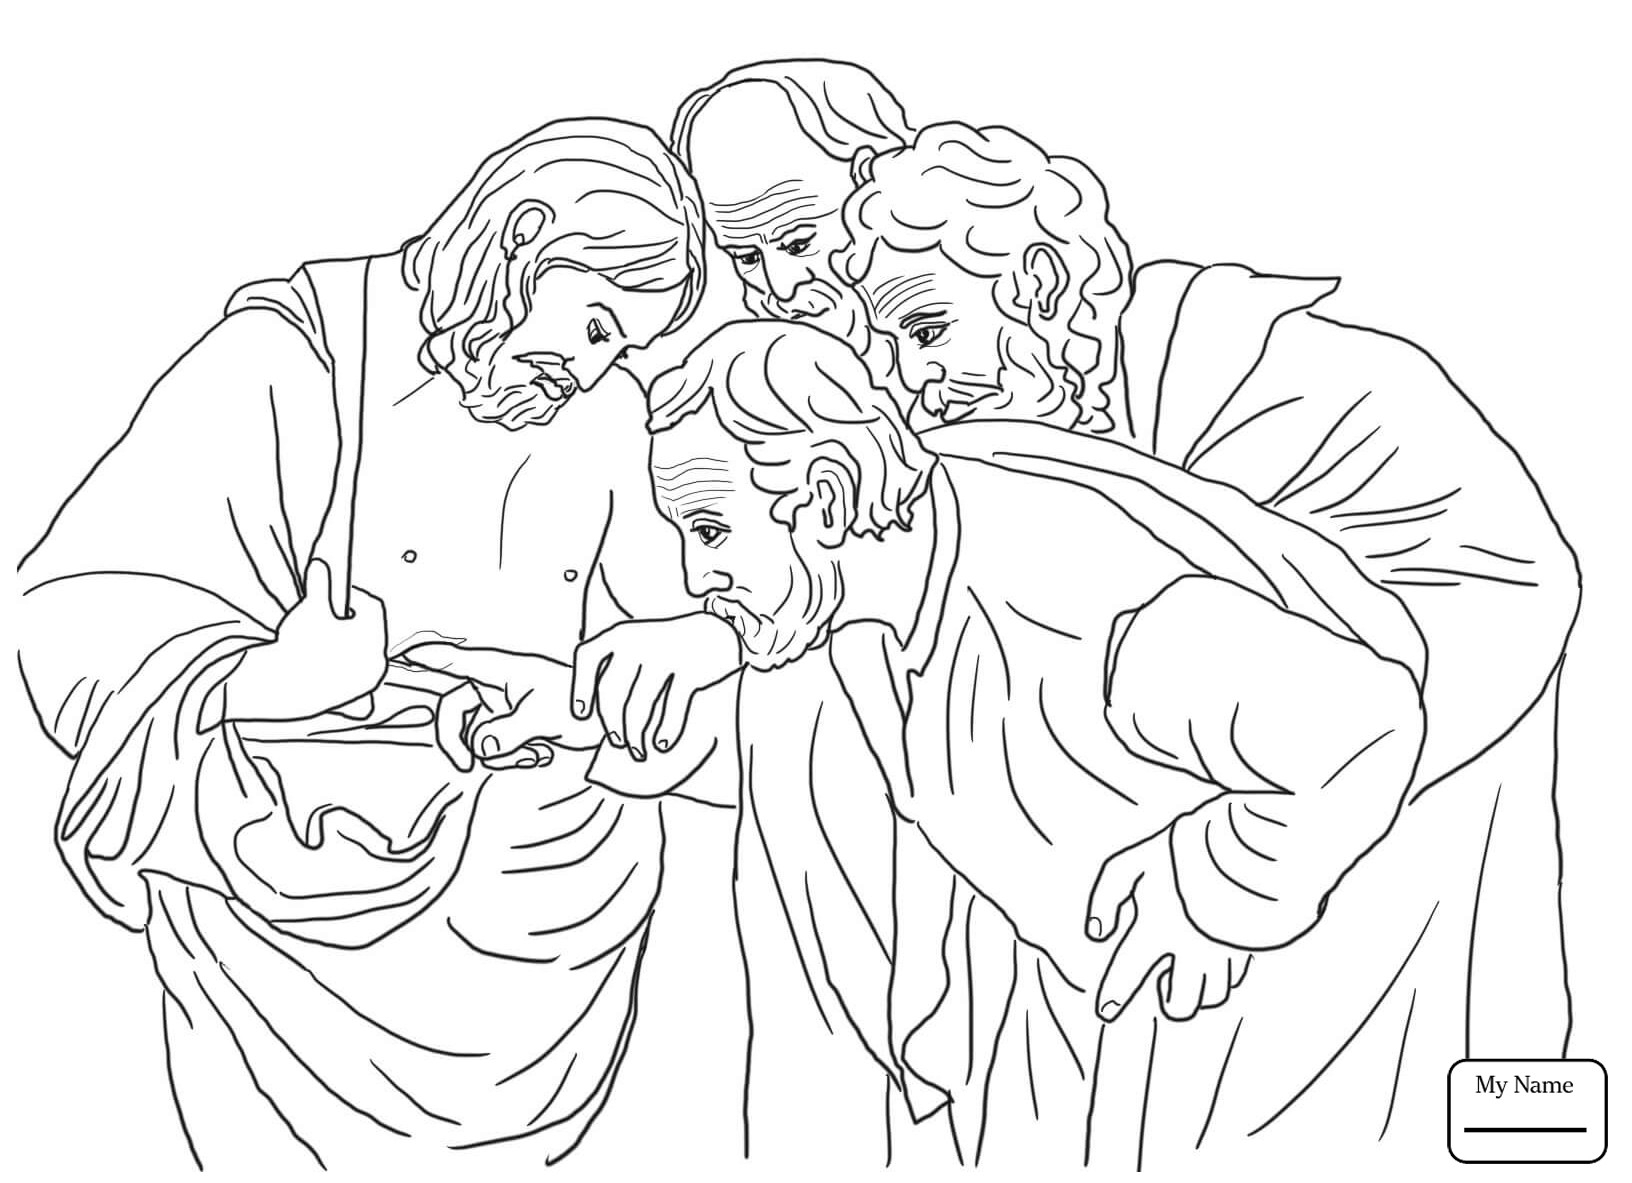 Coloring Pages Of Jesus Christ Resurrection Gallery 11m - Free For Children